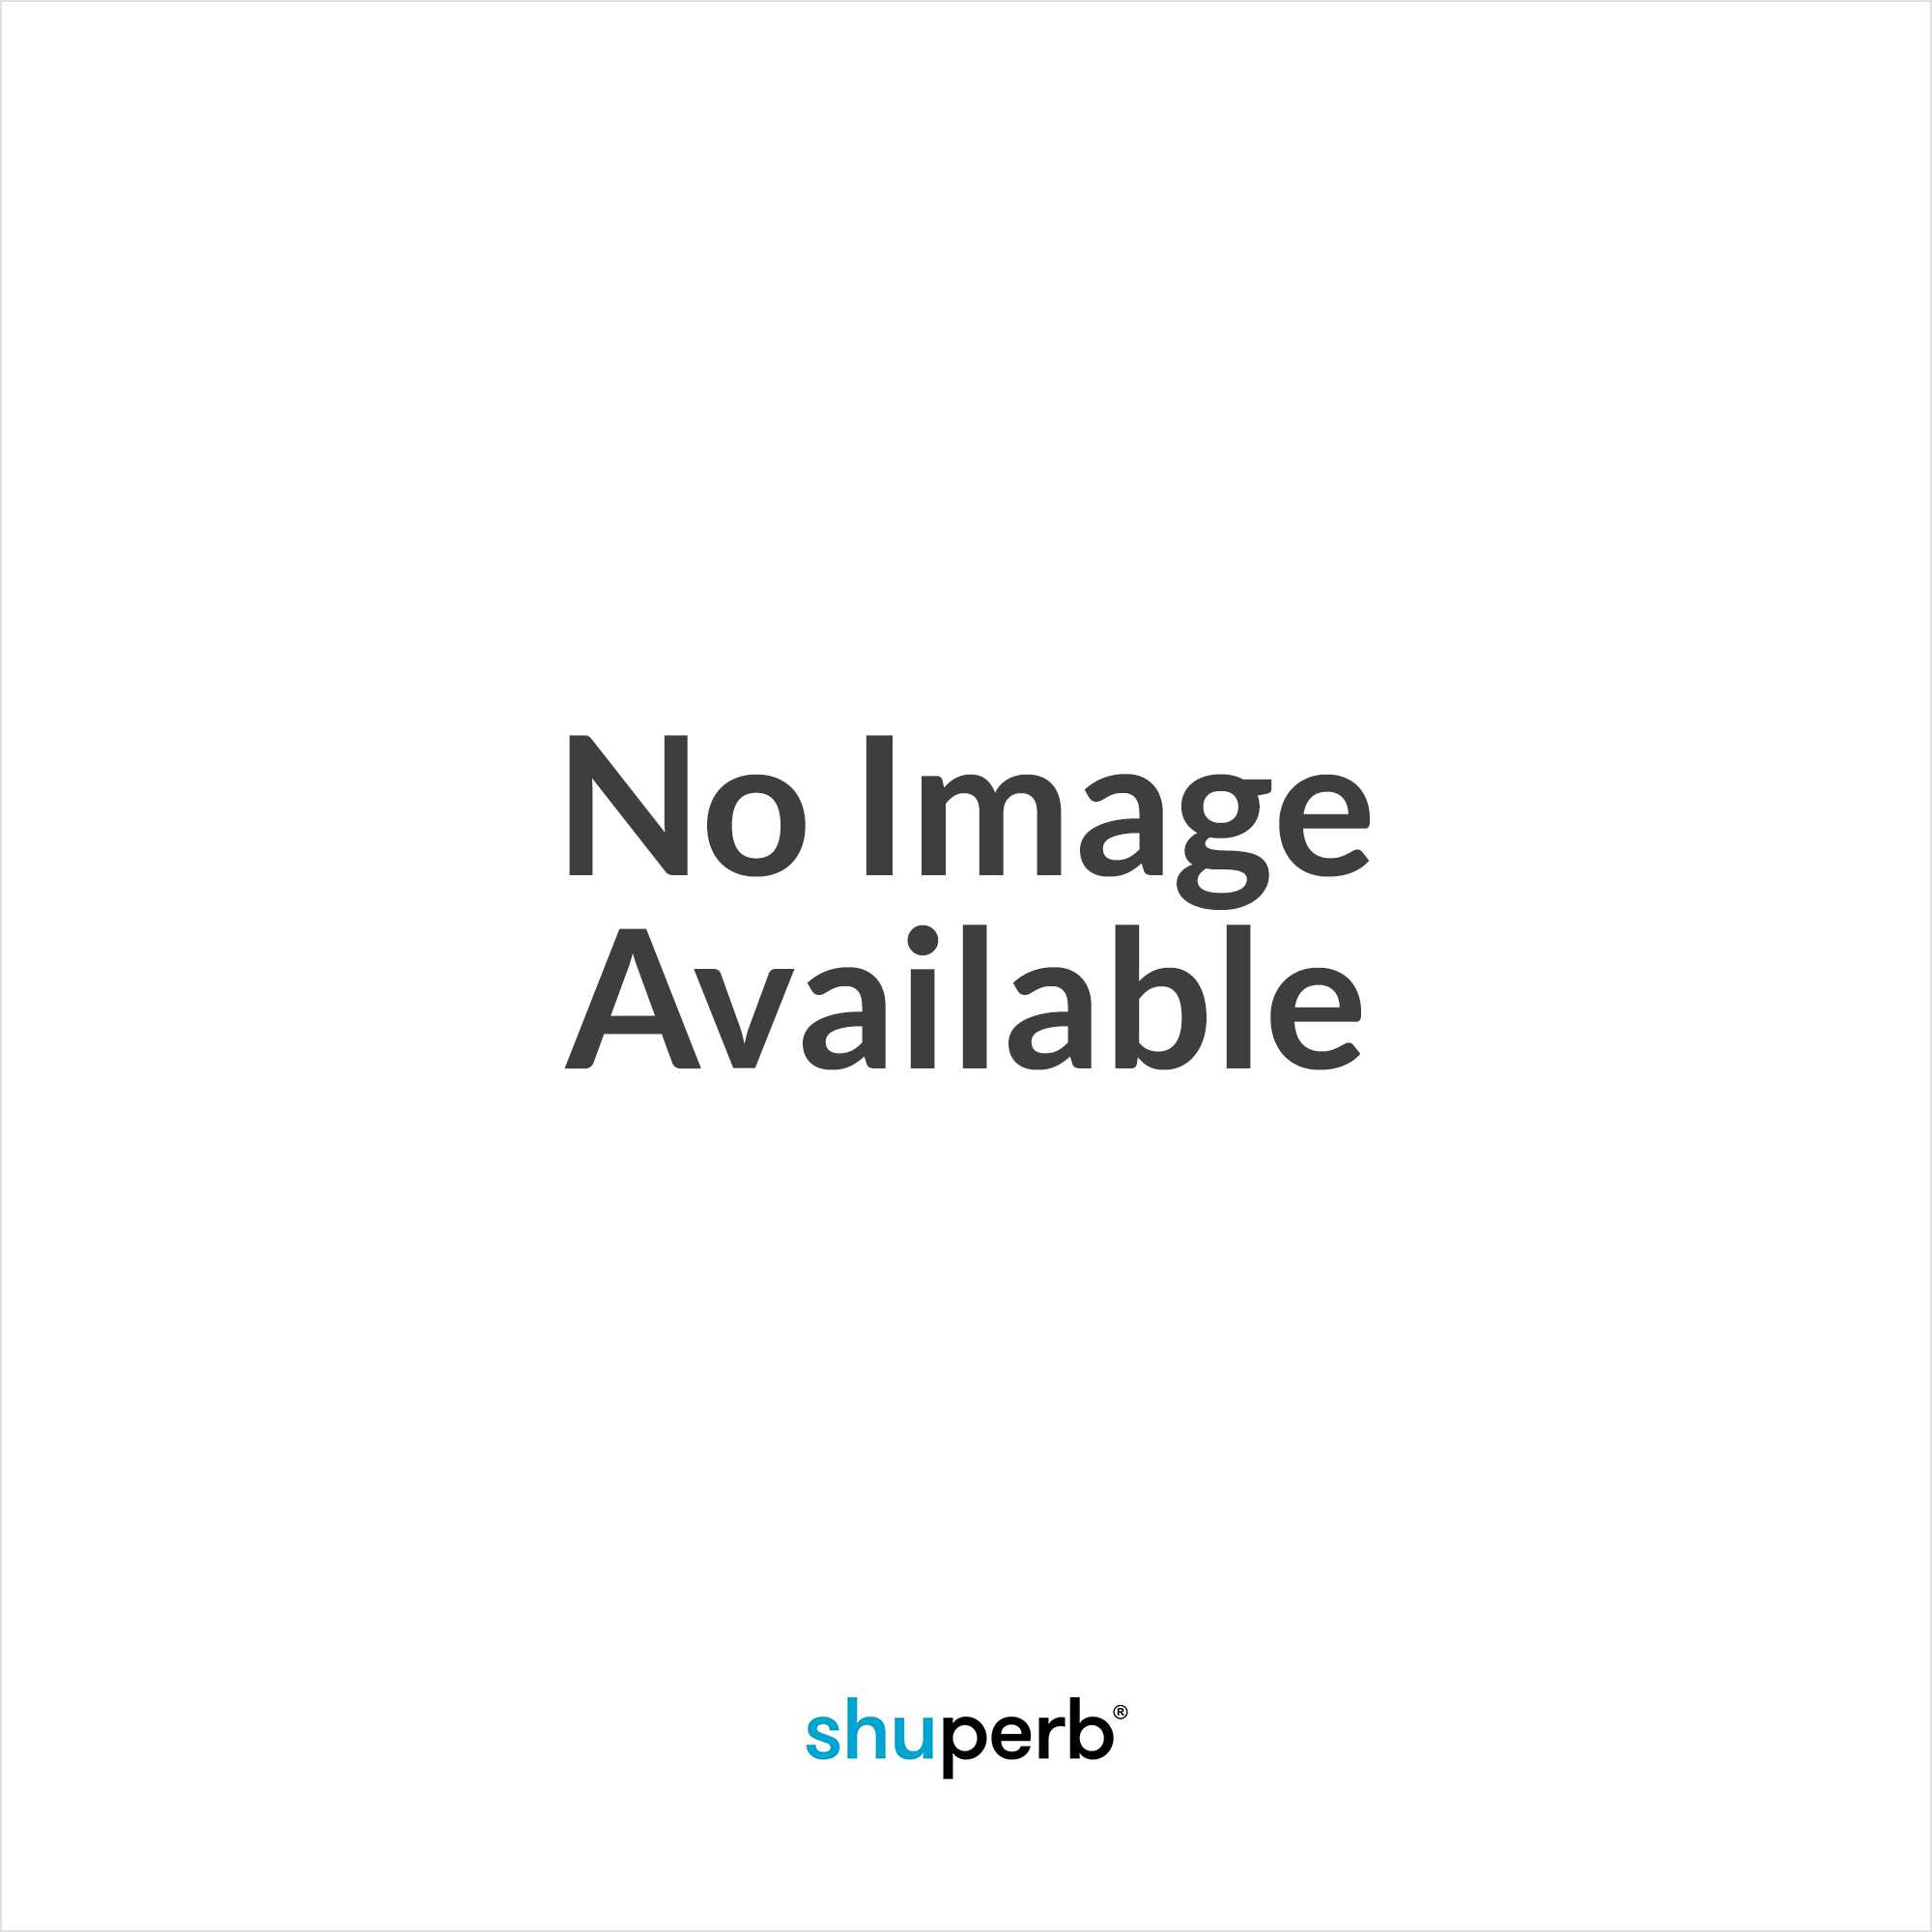 Black Mens Oxfords Sale: Save Up to 60% Off! Shop optimizings.cf's huge selection of Black Oxfords for Men - Over styles available. FREE Shipping & Exchanges, and a % price guarantee!